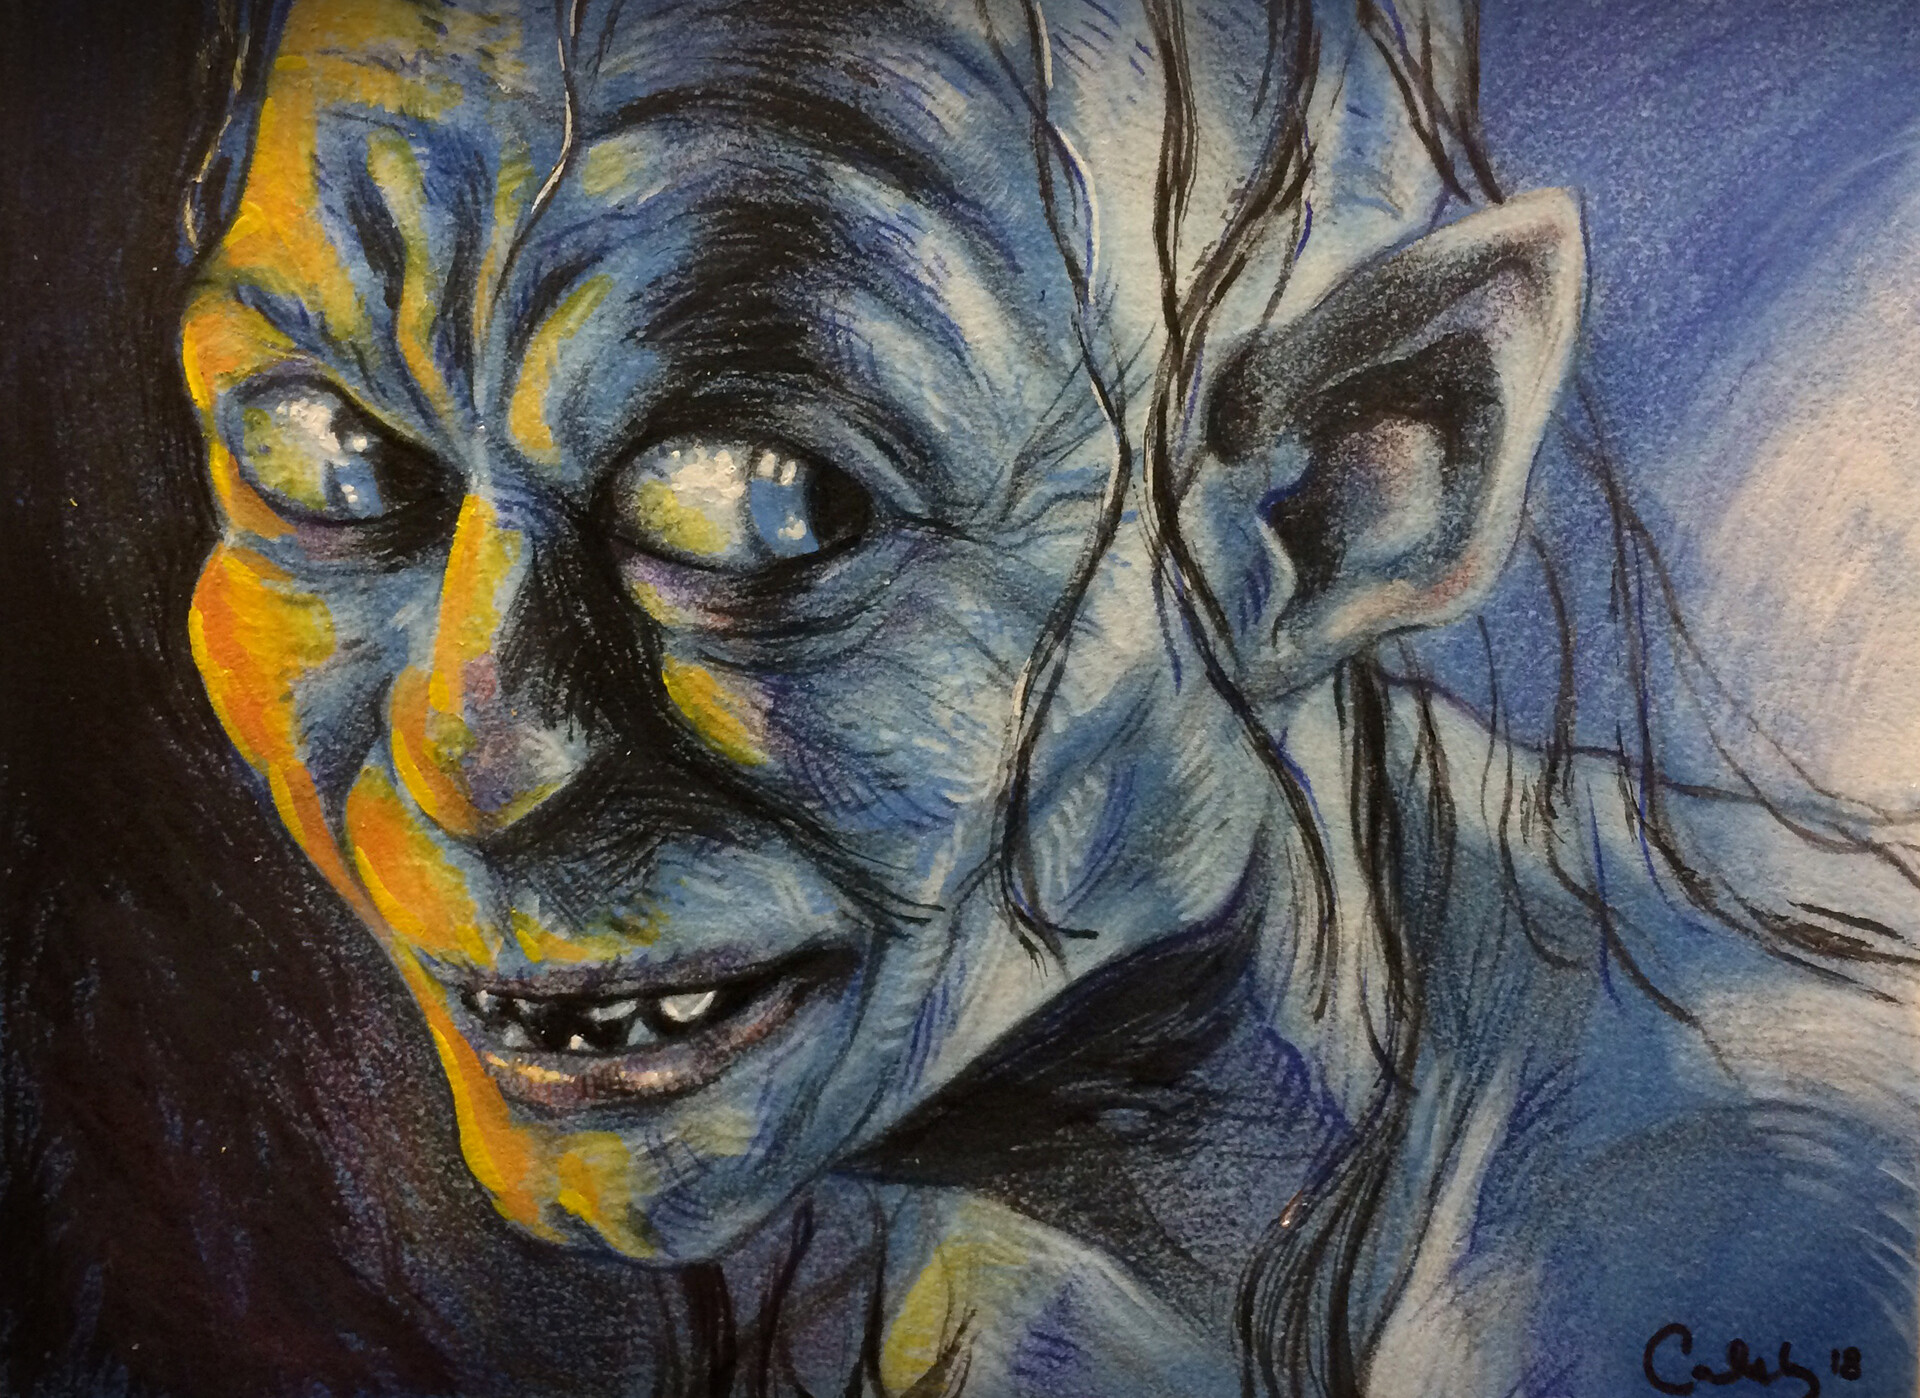 Caleb prochnow lotr gollum mixed media demo by calebmprochnow dcsgk24